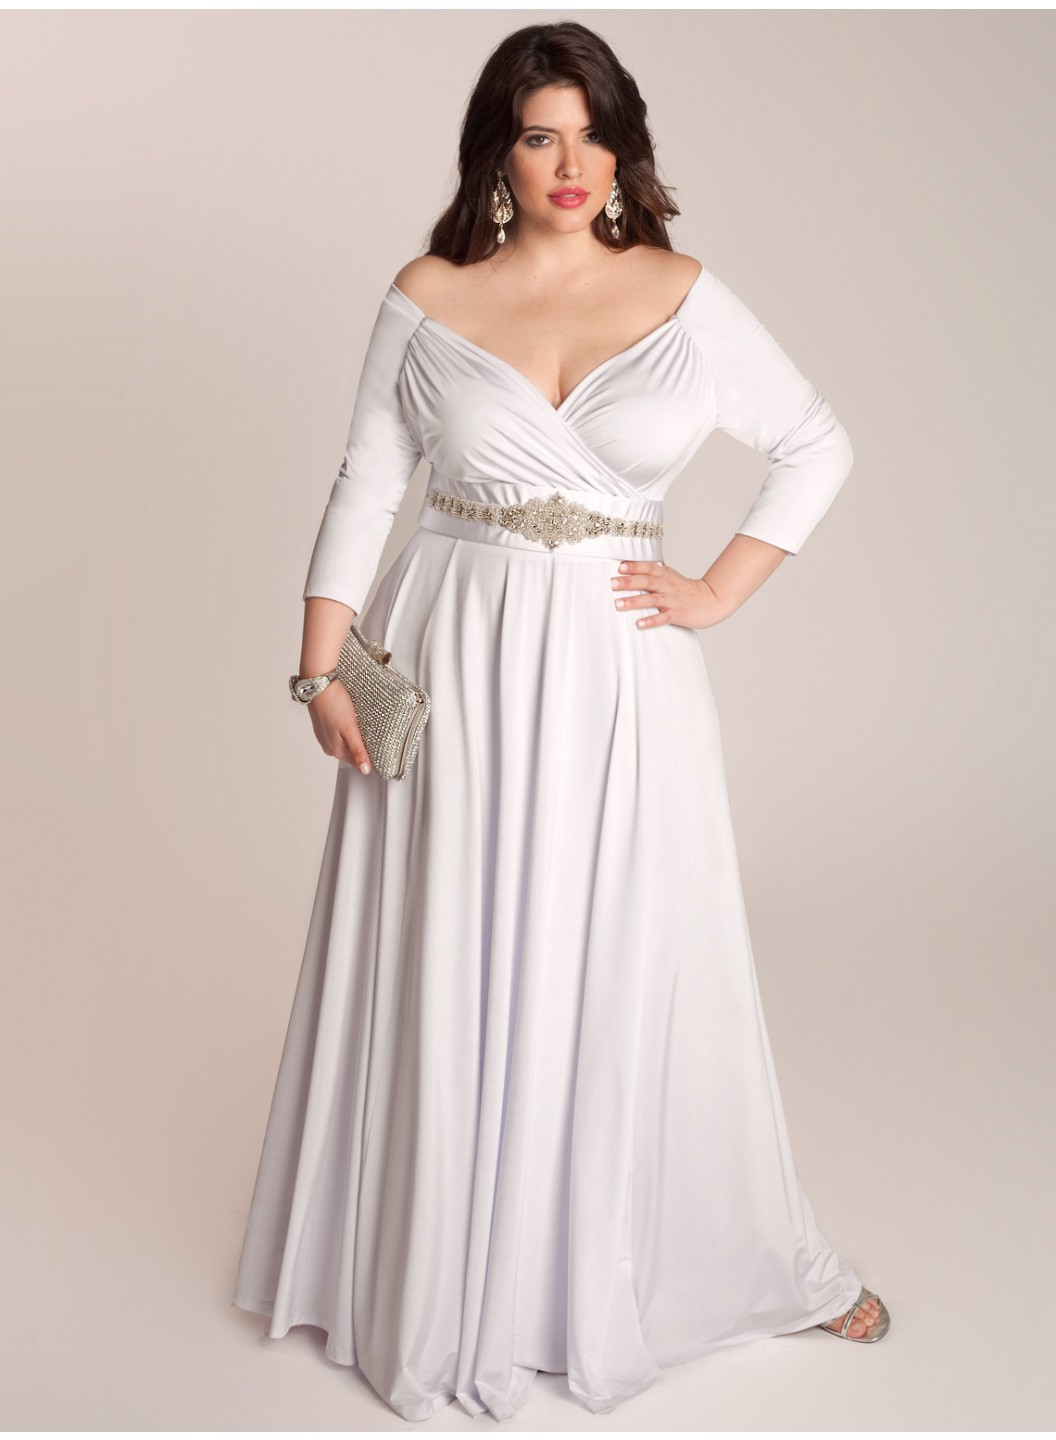 Plus size women christmas party dresses collection for for Plus size wedding party dresses